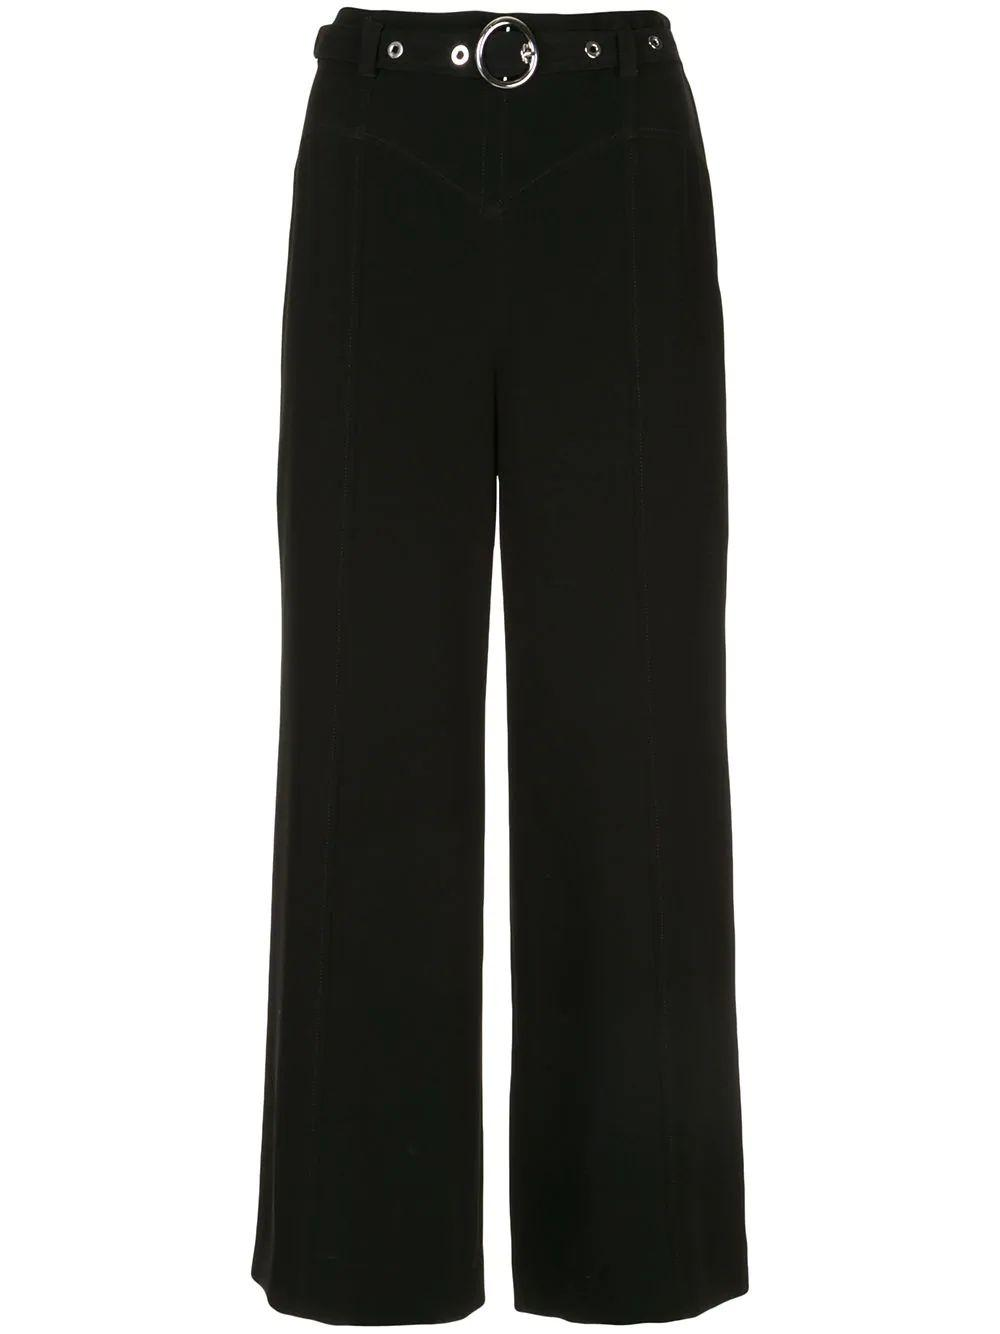 Polly O-Ring Crop Wide Leg Pant